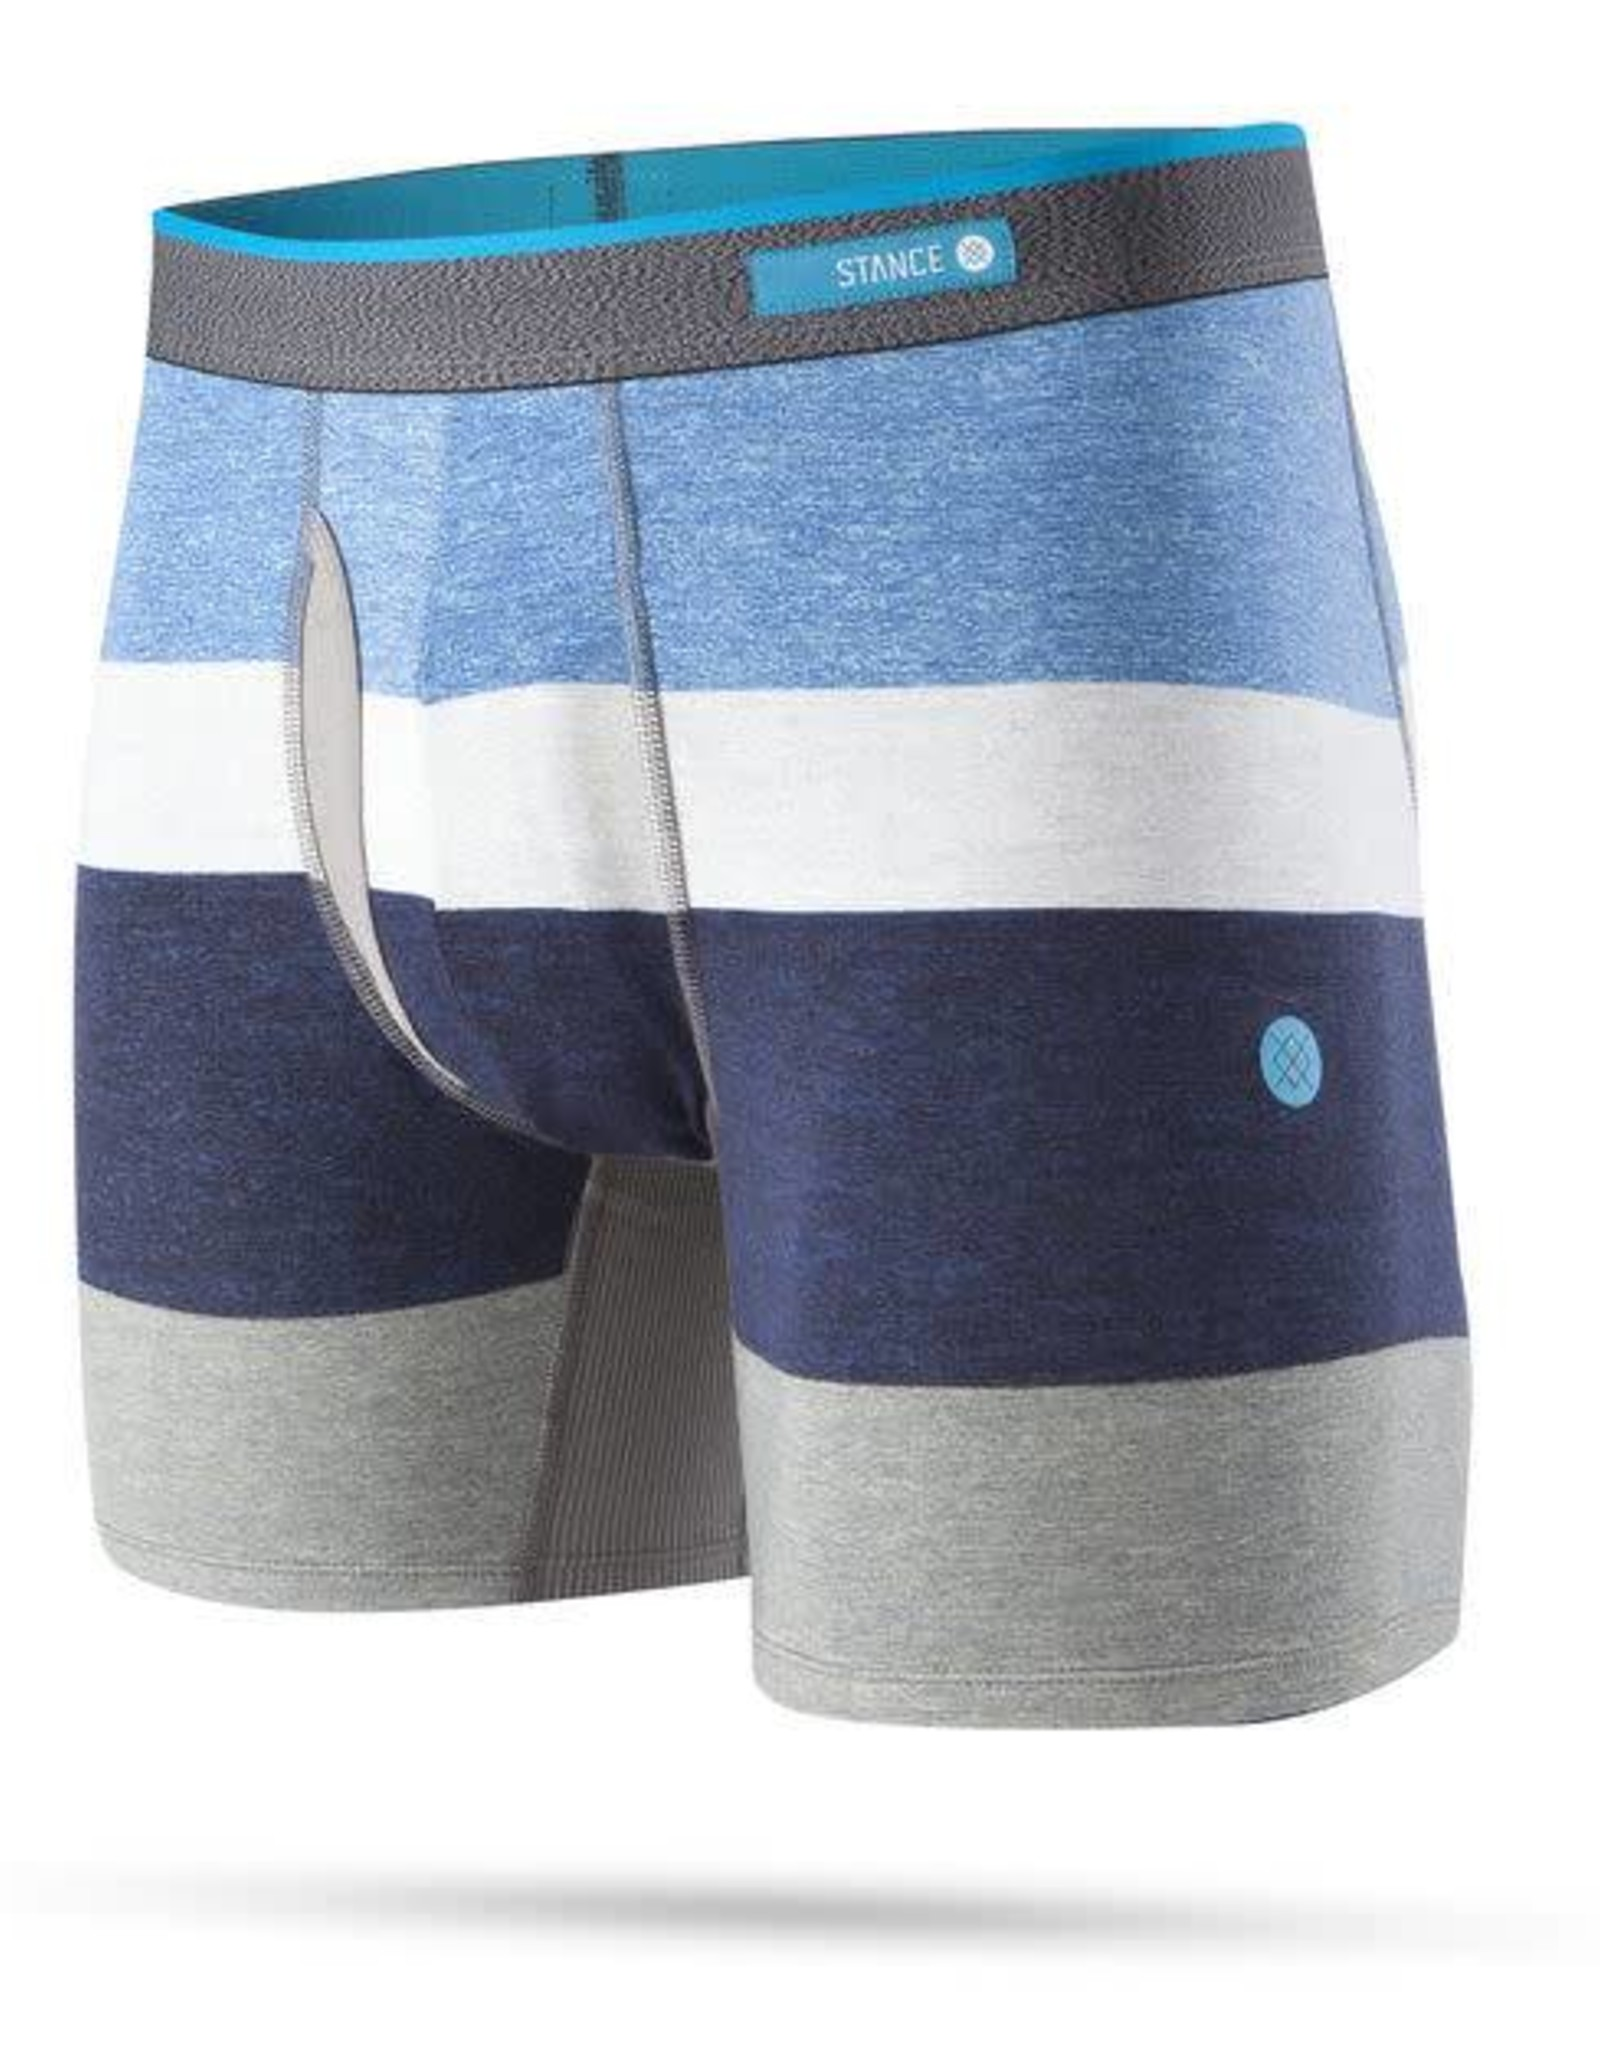 STANCE Boxer Brief, Butter Blend fabric